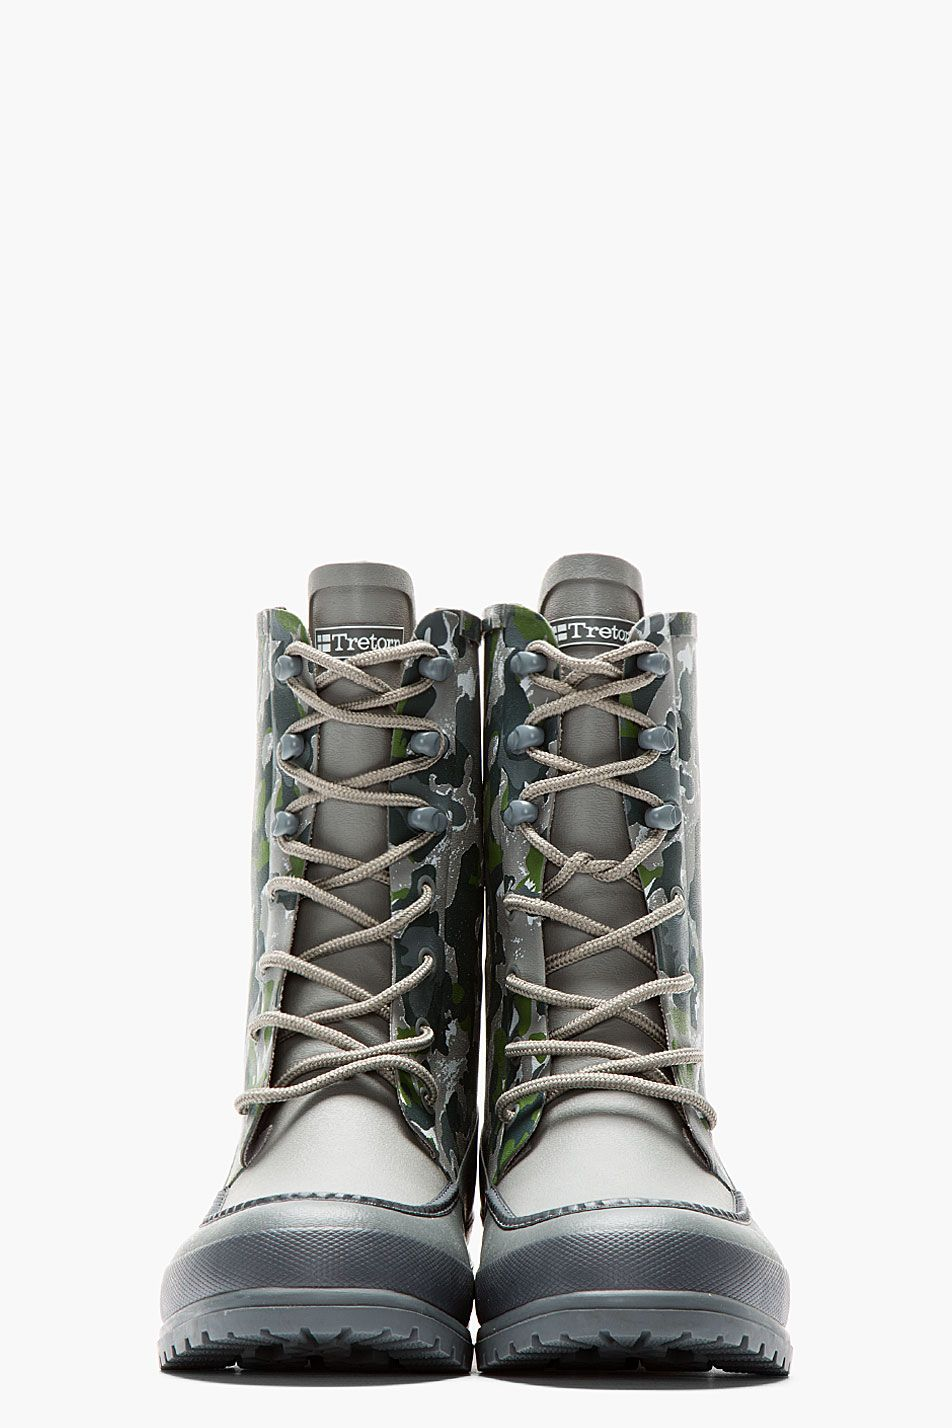 WHITE MOUNTAINEERING Grey & Green camo Tretorn edition long boots